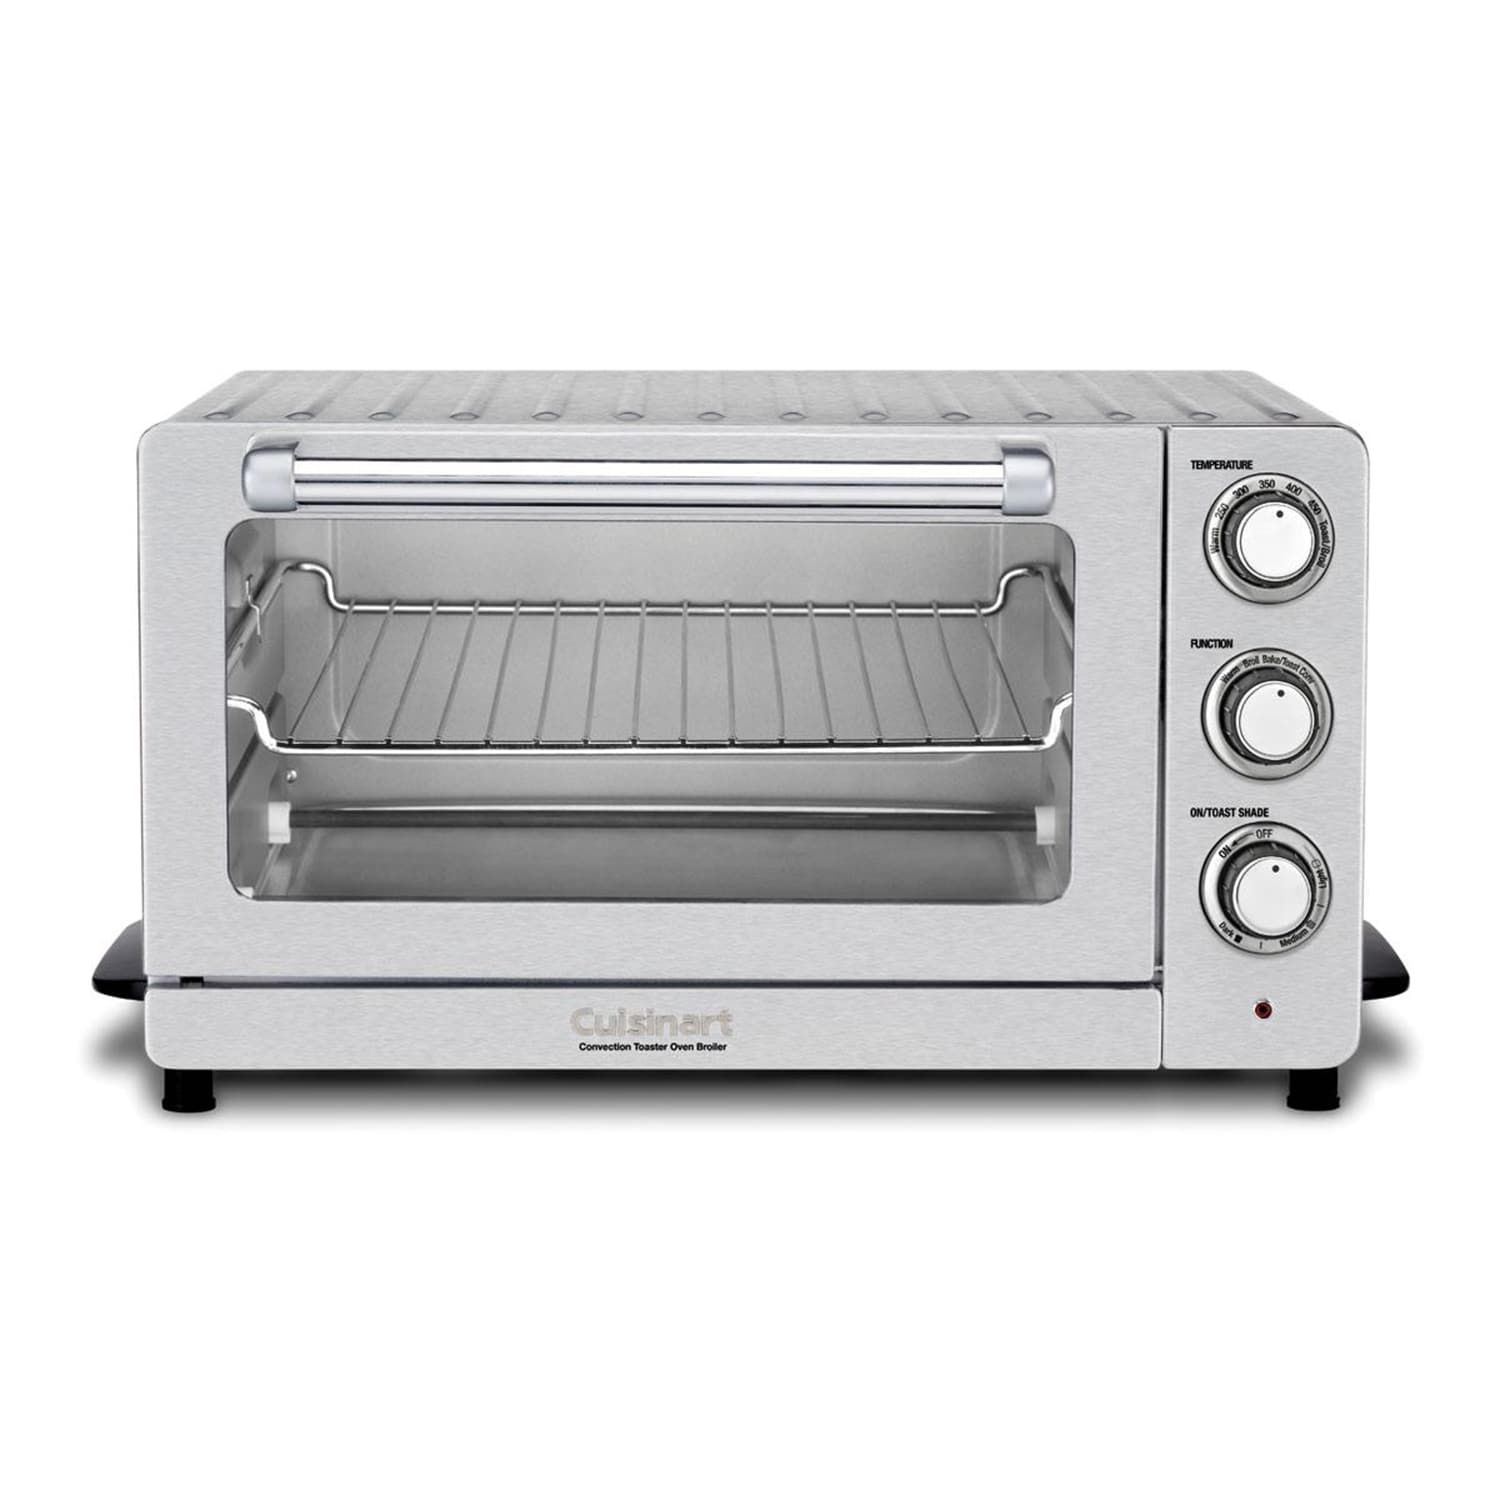 Cuisinart Convection Toaster Oven Broiler Convection Cuisinart Toaster Broiler With Images Cuisinart Toaster Oven Cuisinart Toaster Toaster Oven